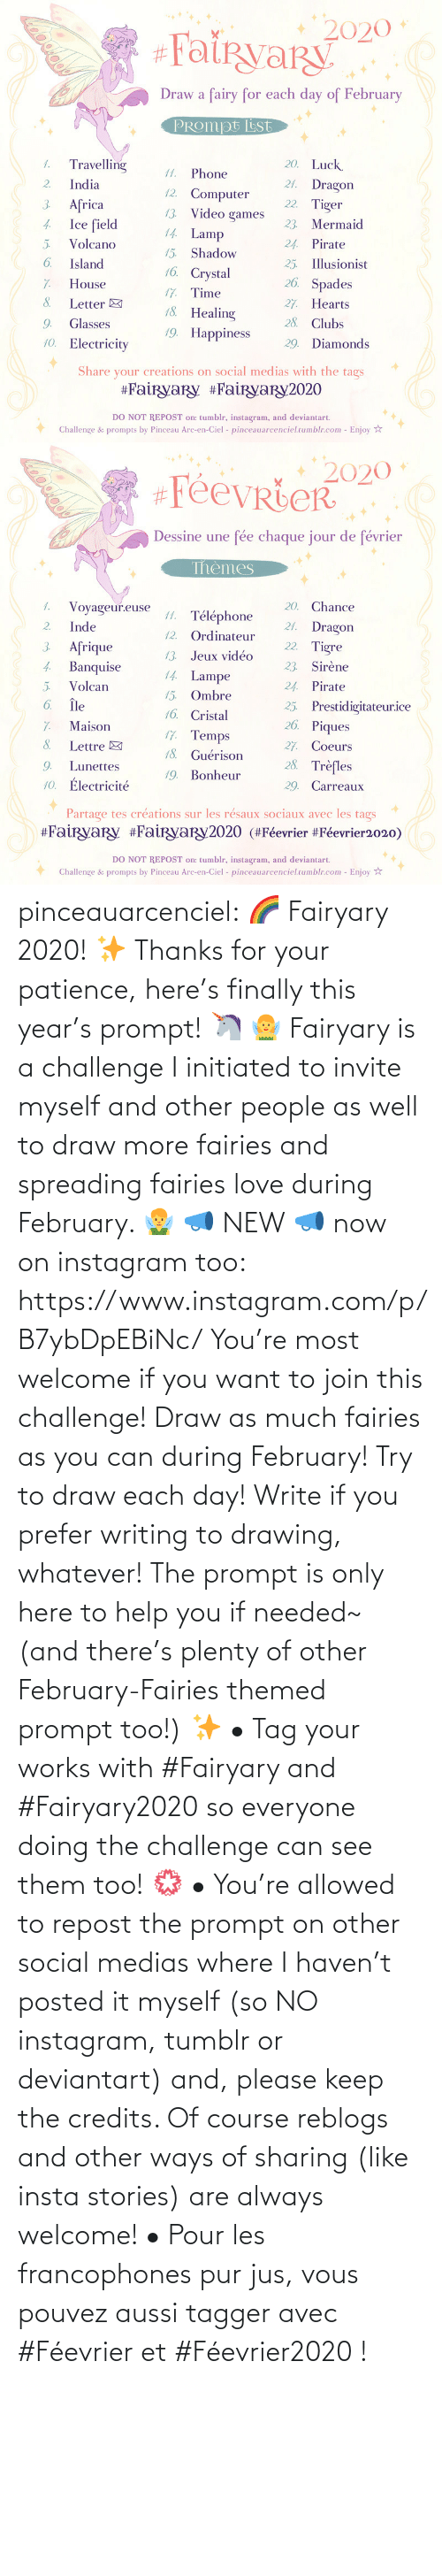 Write: pinceauarcenciel: 🌈 Fairyary 2020! ✨ Thanks for your patience, here's finally this year's prompt! 🦄 🧚‍♀️ Fairyary is a challenge I initiated to invite myself and other people as well to draw more fairies and spreading fairies love during February. 🧚‍♂️ 📣 NEW 📣 now on instagram too: https://www.instagram.com/p/B7ybDpEBiNc/ You're most welcome if you want to join this challenge! Draw as much fairies as you can during February! Try to draw each day! Write if you prefer writing to drawing, whatever! The prompt is only here to help you if needed~ (and there's plenty of other February-Fairies themed prompt too!) ✨ • Tag your works with #Fairyary and #Fairyary2020 so everyone doing the challenge can see them too! 💮 • You're allowed to repost the prompt on other social medias where I haven't posted it myself (so NO instagram, tumblr or deviantart) and, please keep the credits. Of course reblogs and other ways of sharing (like insta stories) are always welcome!